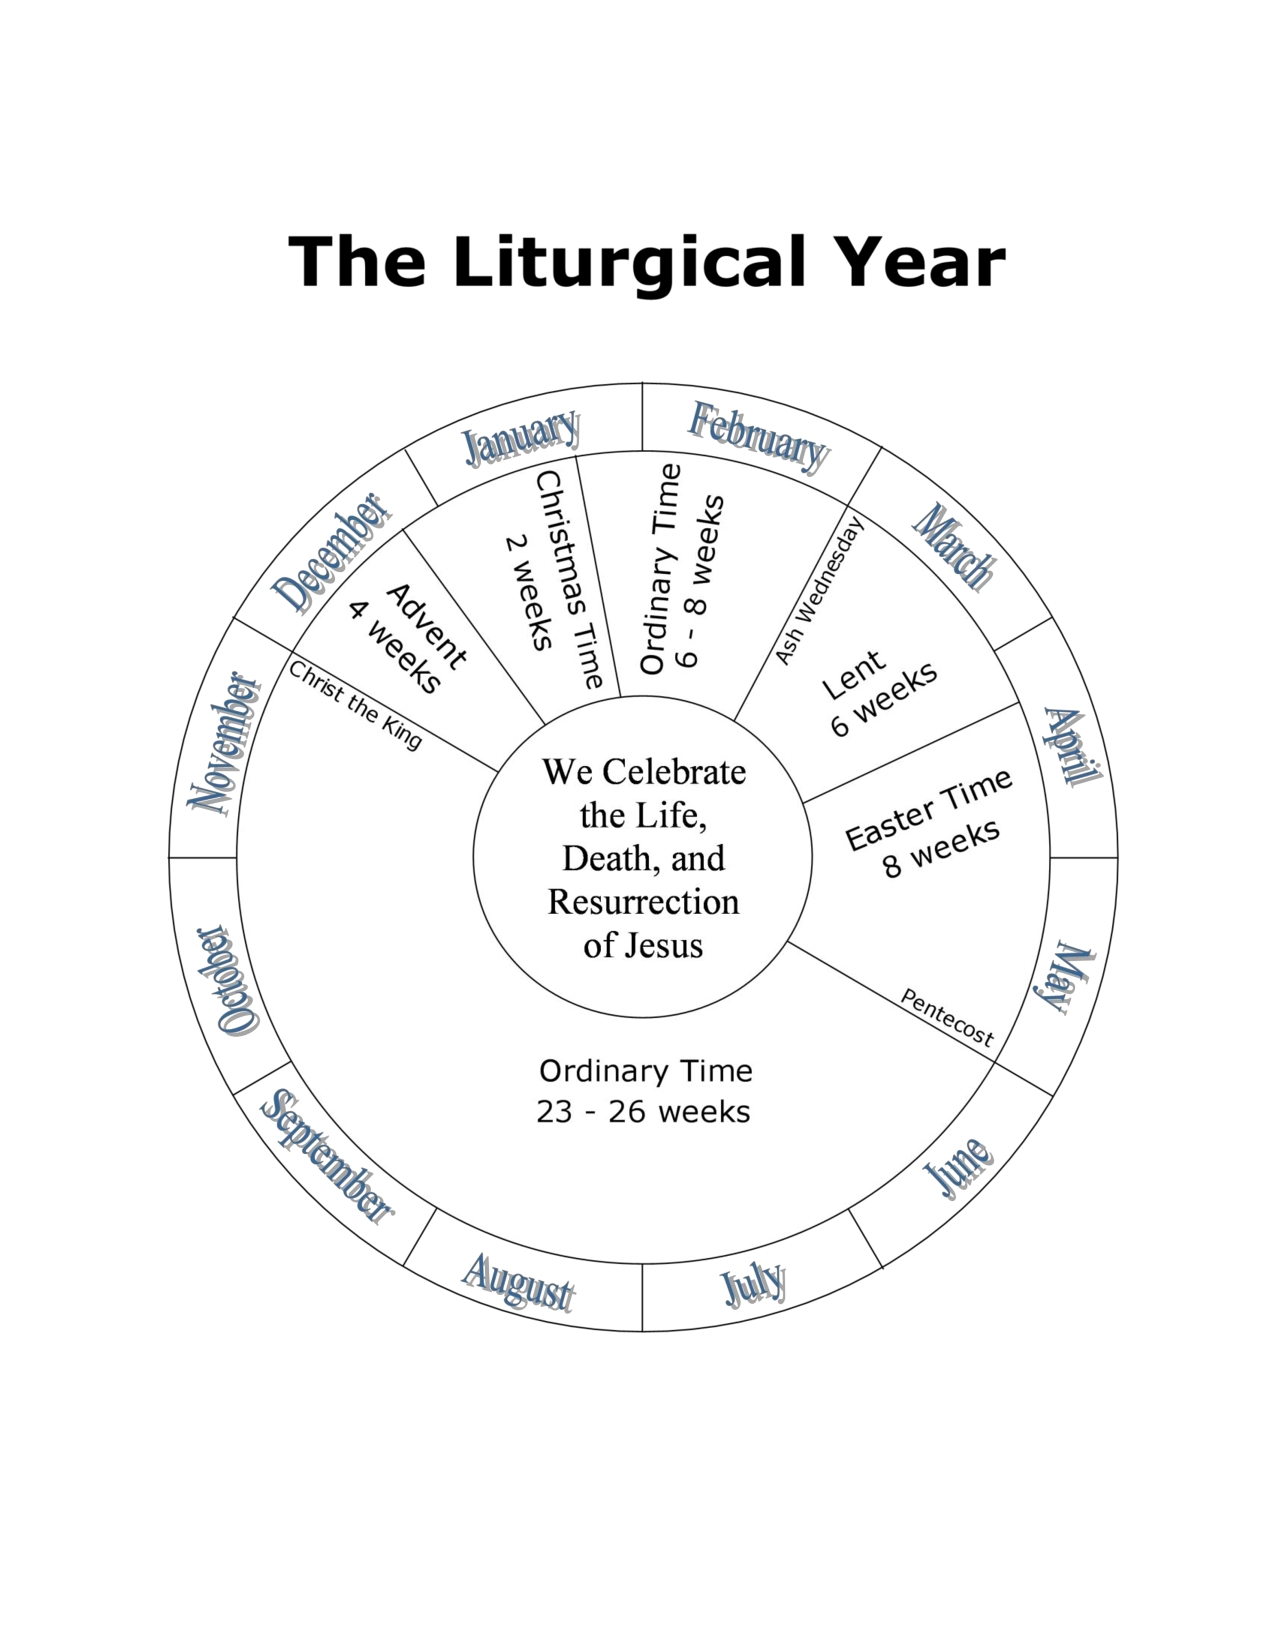 Liturgical Year Coloring Page | Catholic And Religious | Pinterest  Catholic Liturgical Calendar For Students